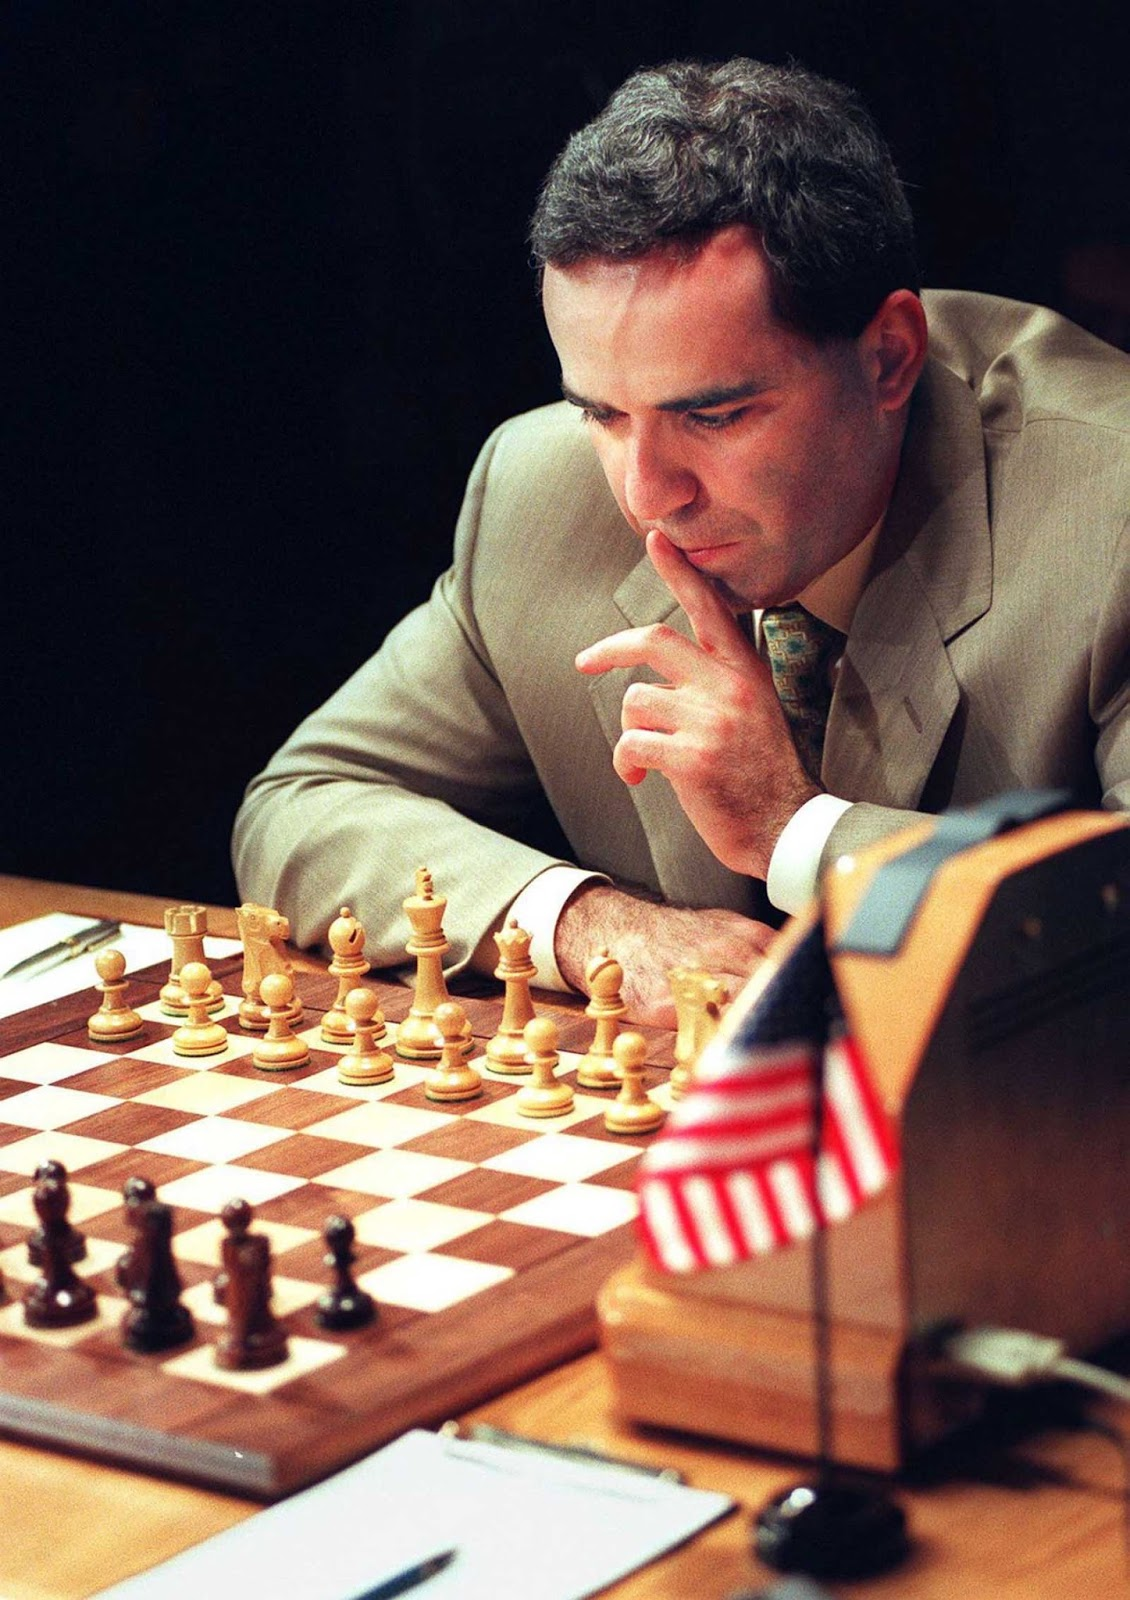 Kasparov contemplates his opening move in Game 1 of the rematch.